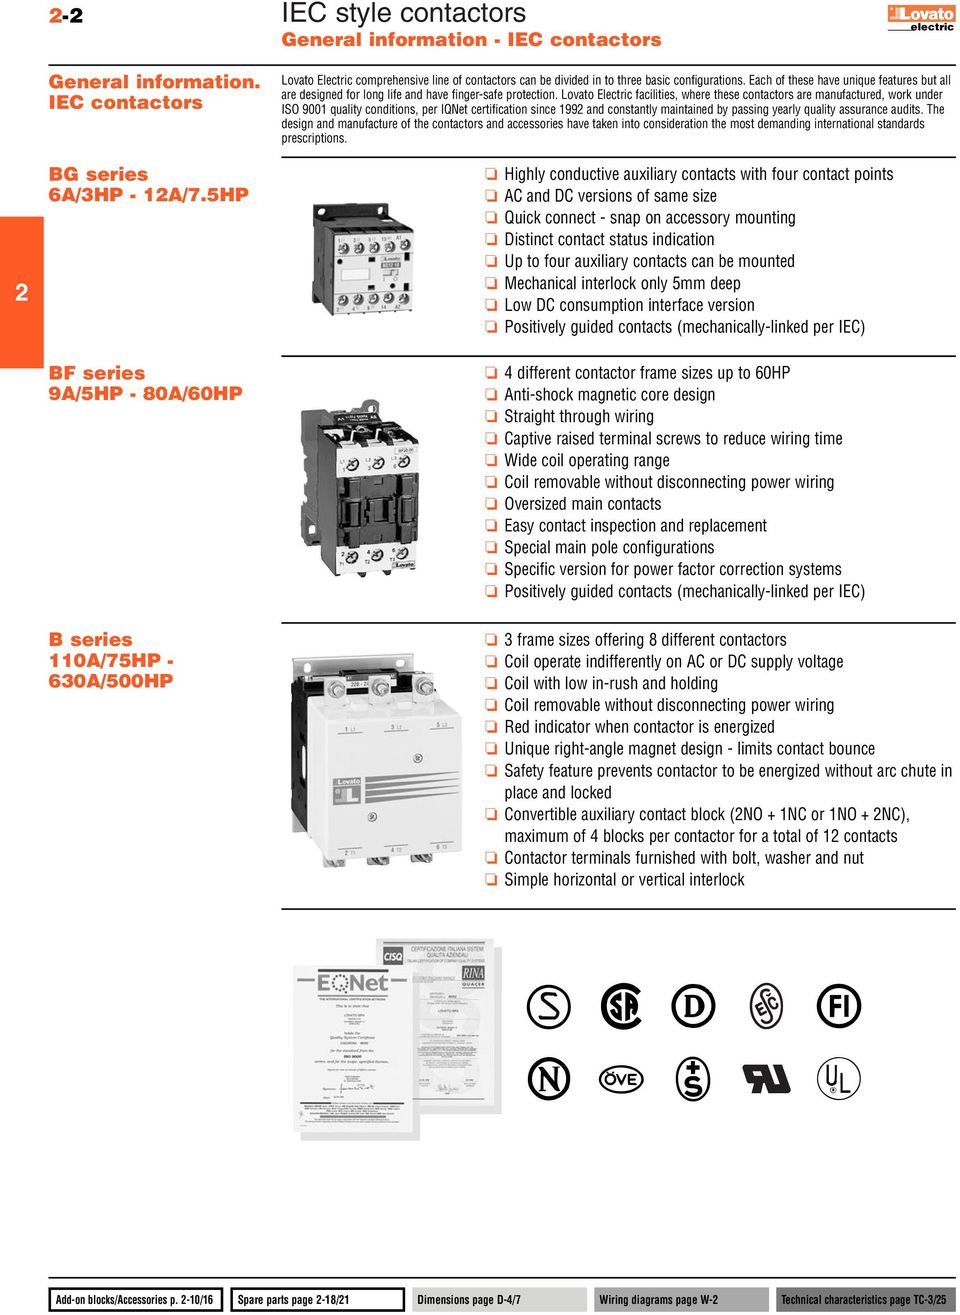 Iec Style Contactors Long Electrical And Mechanical Life Complete Motor Starter Wiring Diagram Each Of These Have Unique Features But All Are Designed For Finger